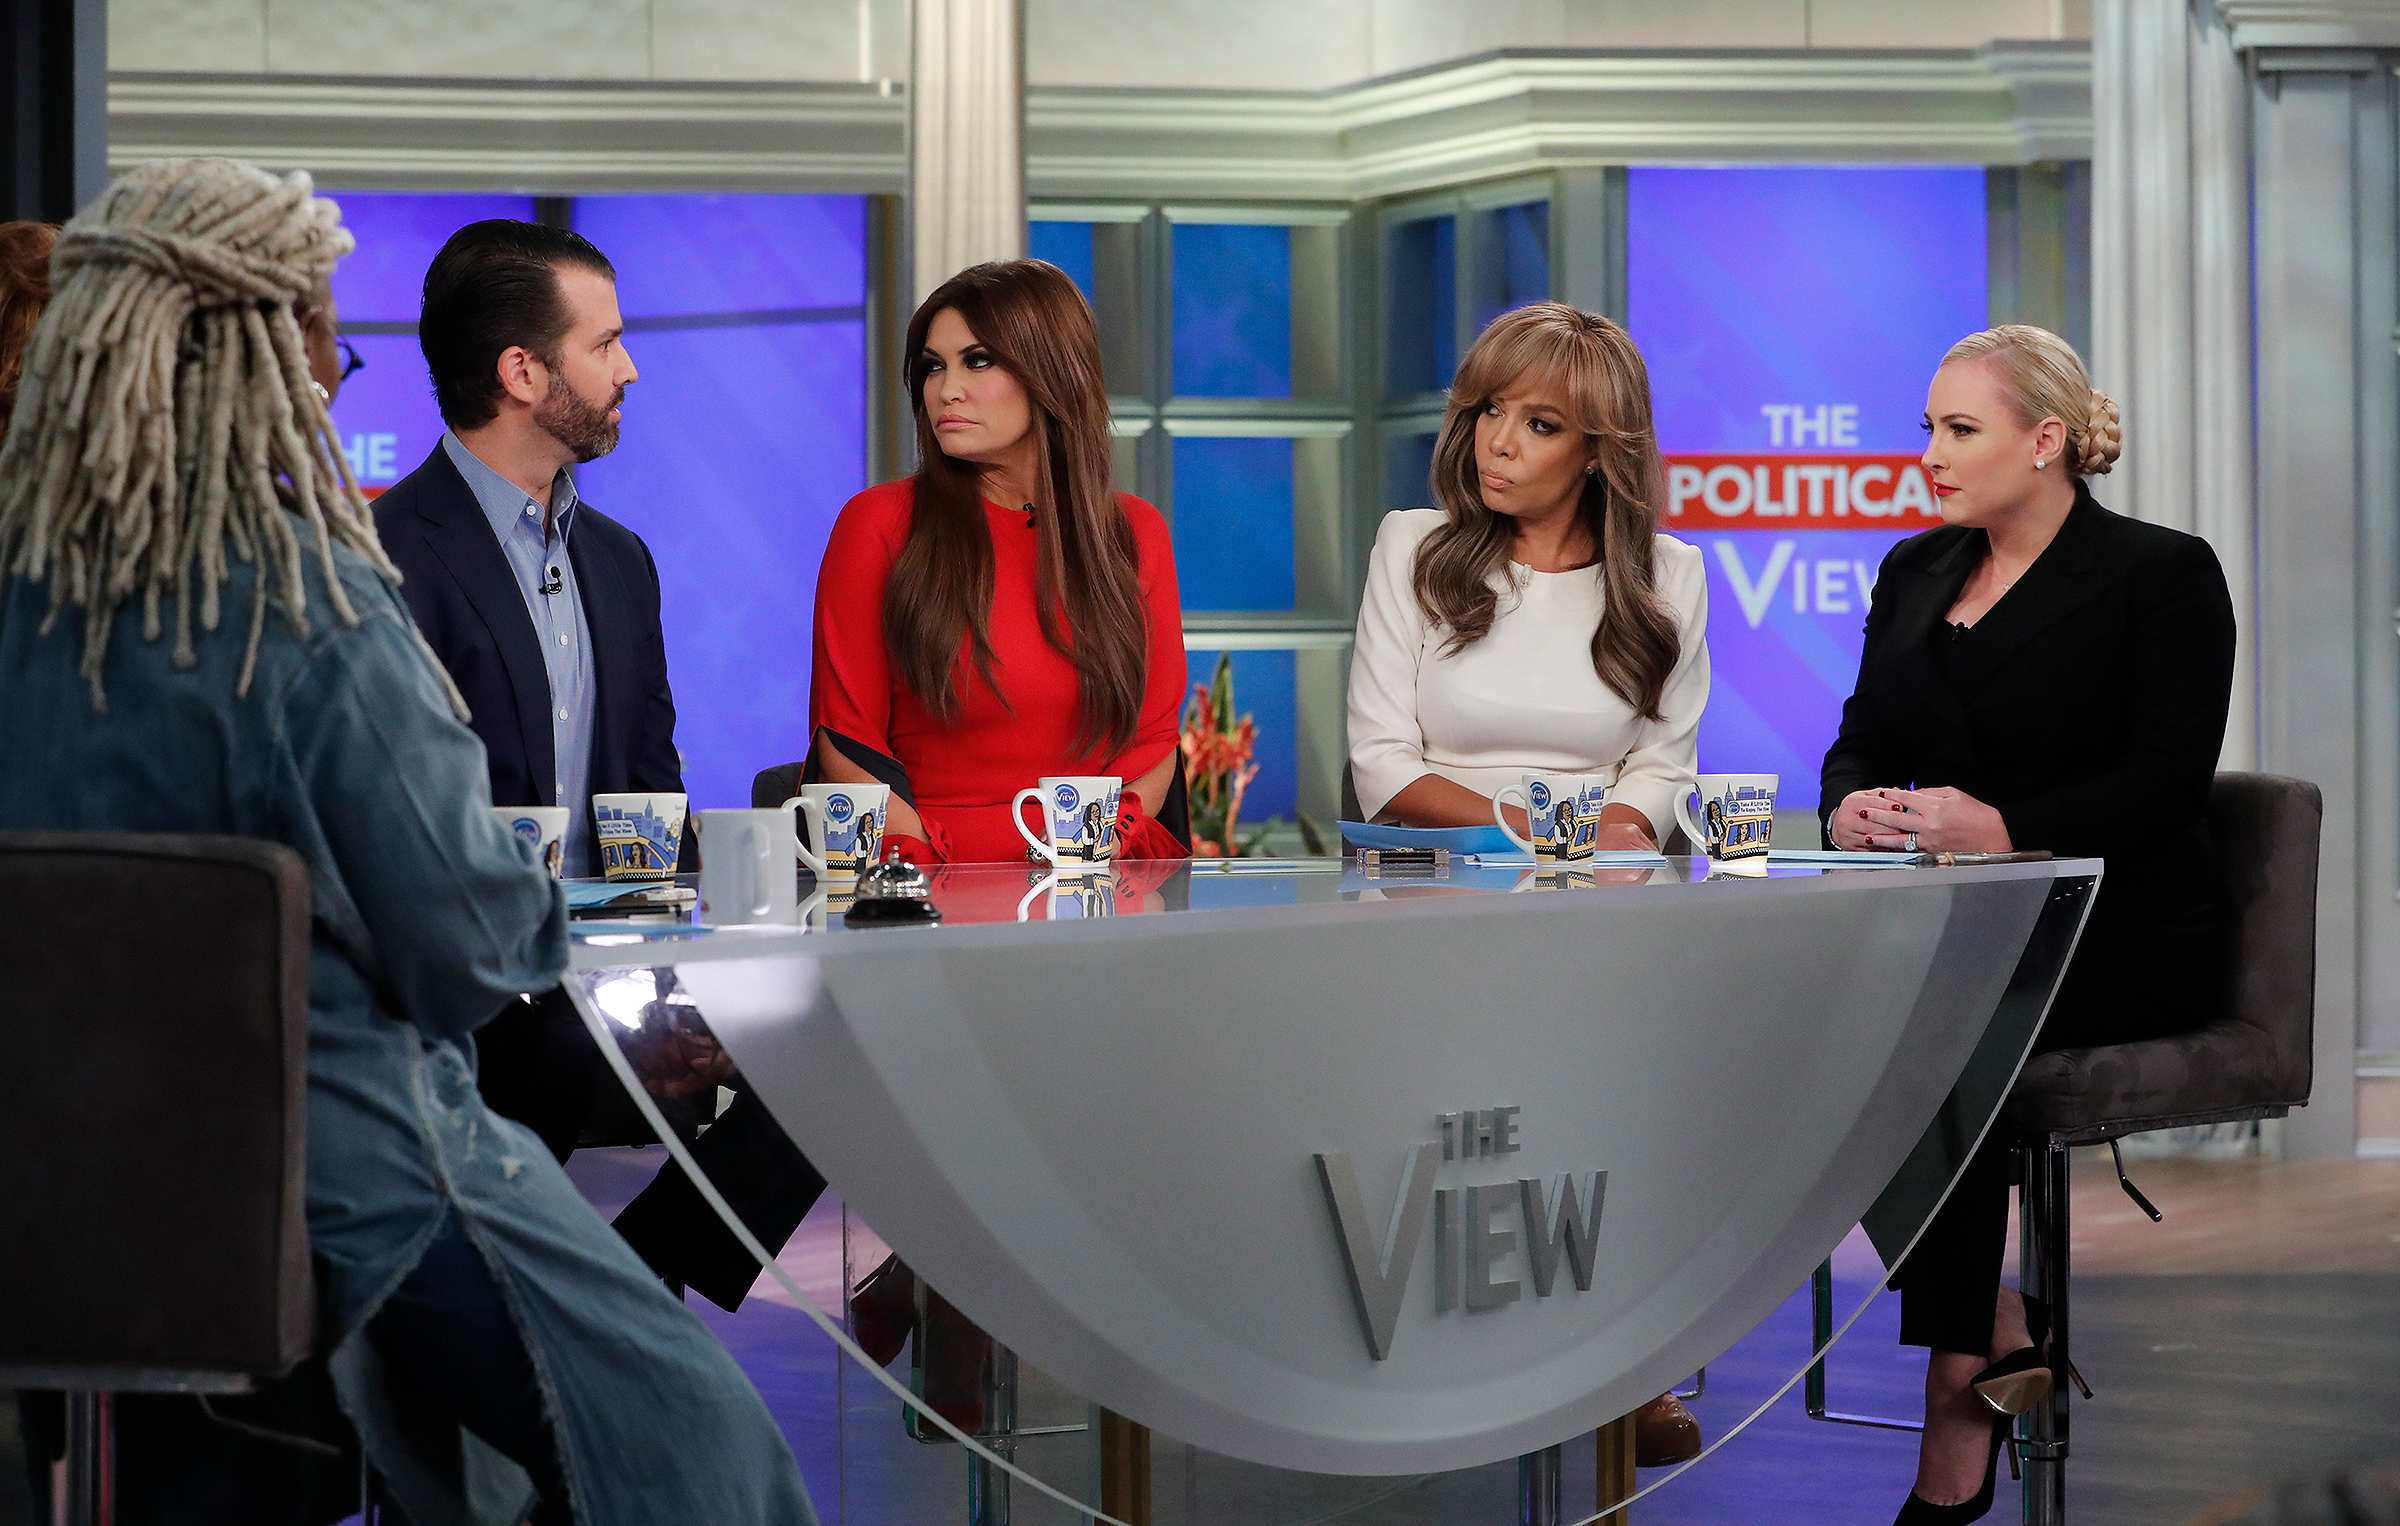 Don Jr. Lays a Smackdown on the 'View'